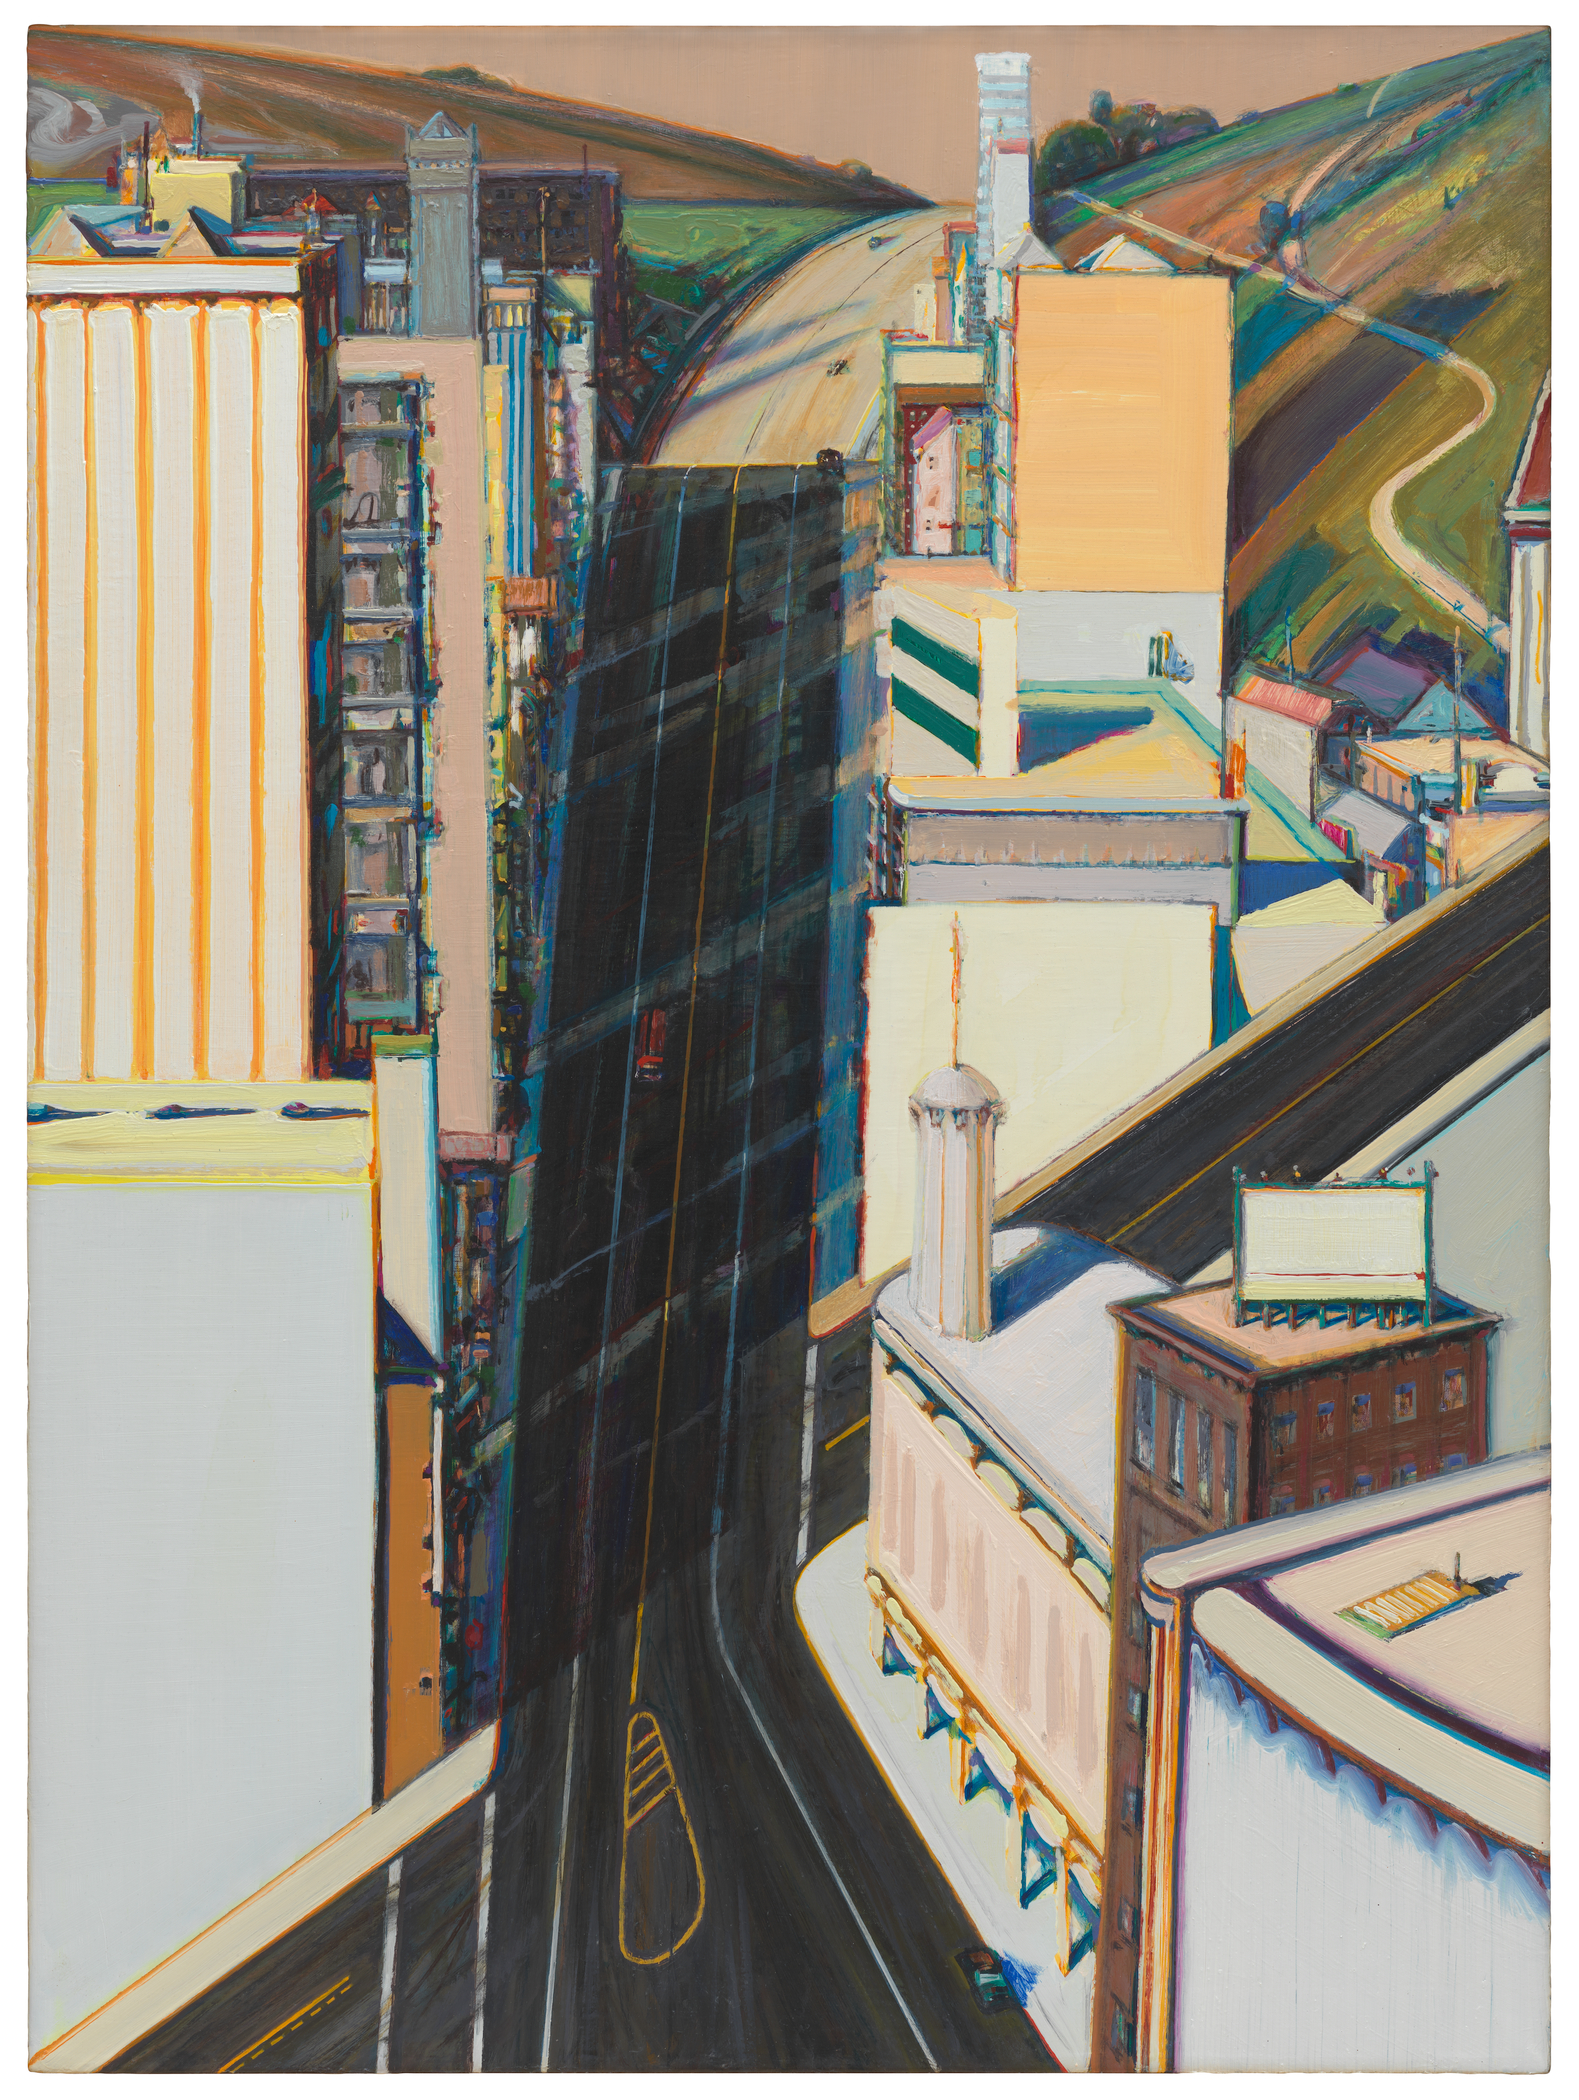 <p>This four-foot-tall, three-foot-wide oil painting depicts a steep street running up a hill through a city. Though there are many buildings on either side of the main street, no people are visible. The main street, covered in black tarmac and thin lane markings, cuts straight up the center of the canvas, so steep that it appears almost vertical. On both sides of the street, tall buildings are lined up one behind the other, rendered in pastel oranges, blues and creams. A second street cuts across the main artery at another improbably steep angle, starting at our lower left and exiting the canvas half way up the right side. At the top of the painting, behind the last of the buildings, the setting abruptly switches to a pastoral landscape. Sloping green and brown fields fill the upper corners of the canvas, and the straight black city street becomes a tan, sunlit road that curves up between them.</p>